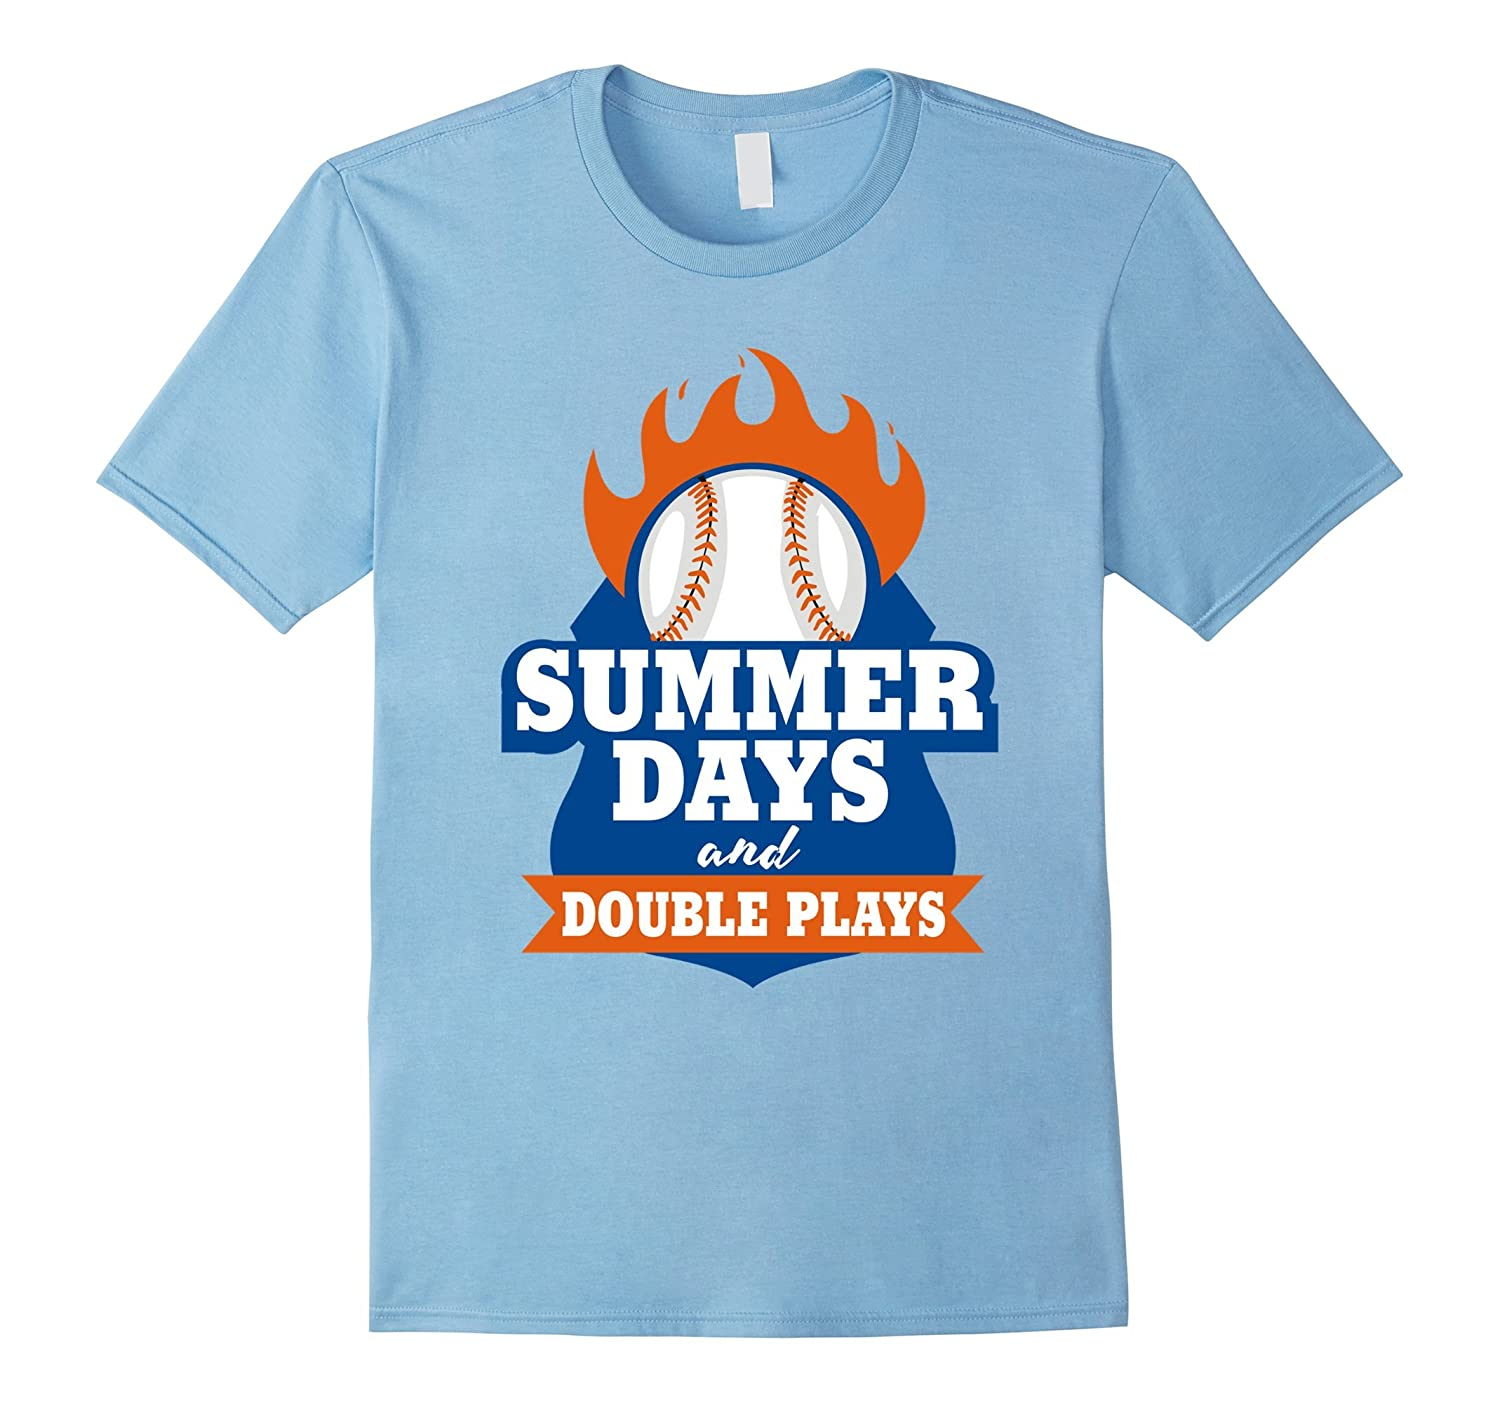 96e795d76d11 Summer Days And Double Plays! T-Shirt-gm – Ganamatee